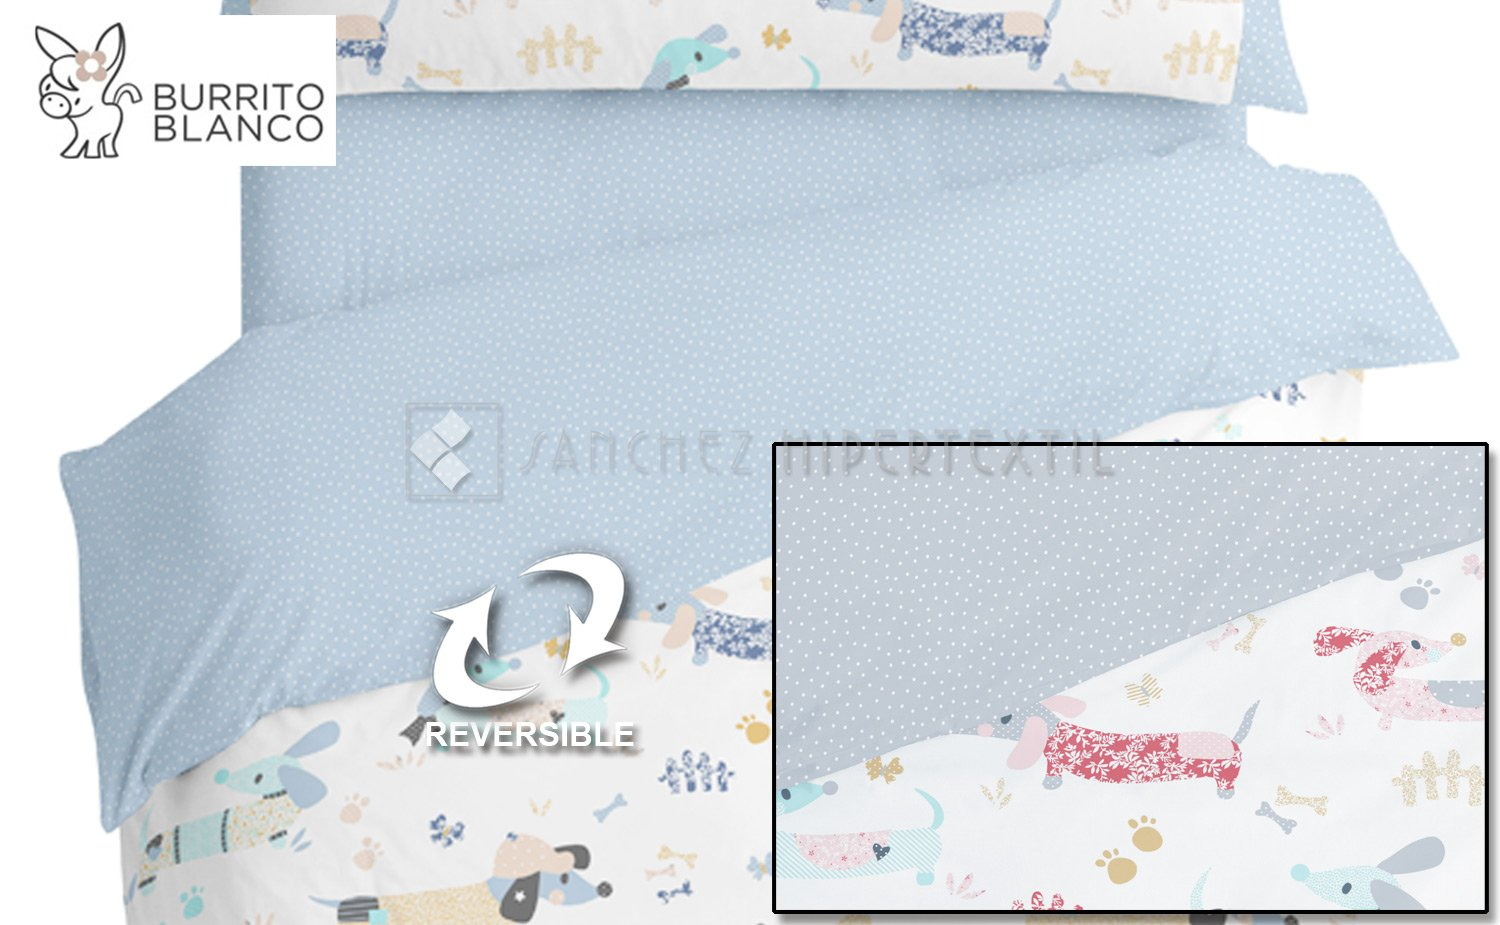 Reversible Duvet cover set 3 pieces + bag  - 169 - DOGS by BURRITO BLANCO.